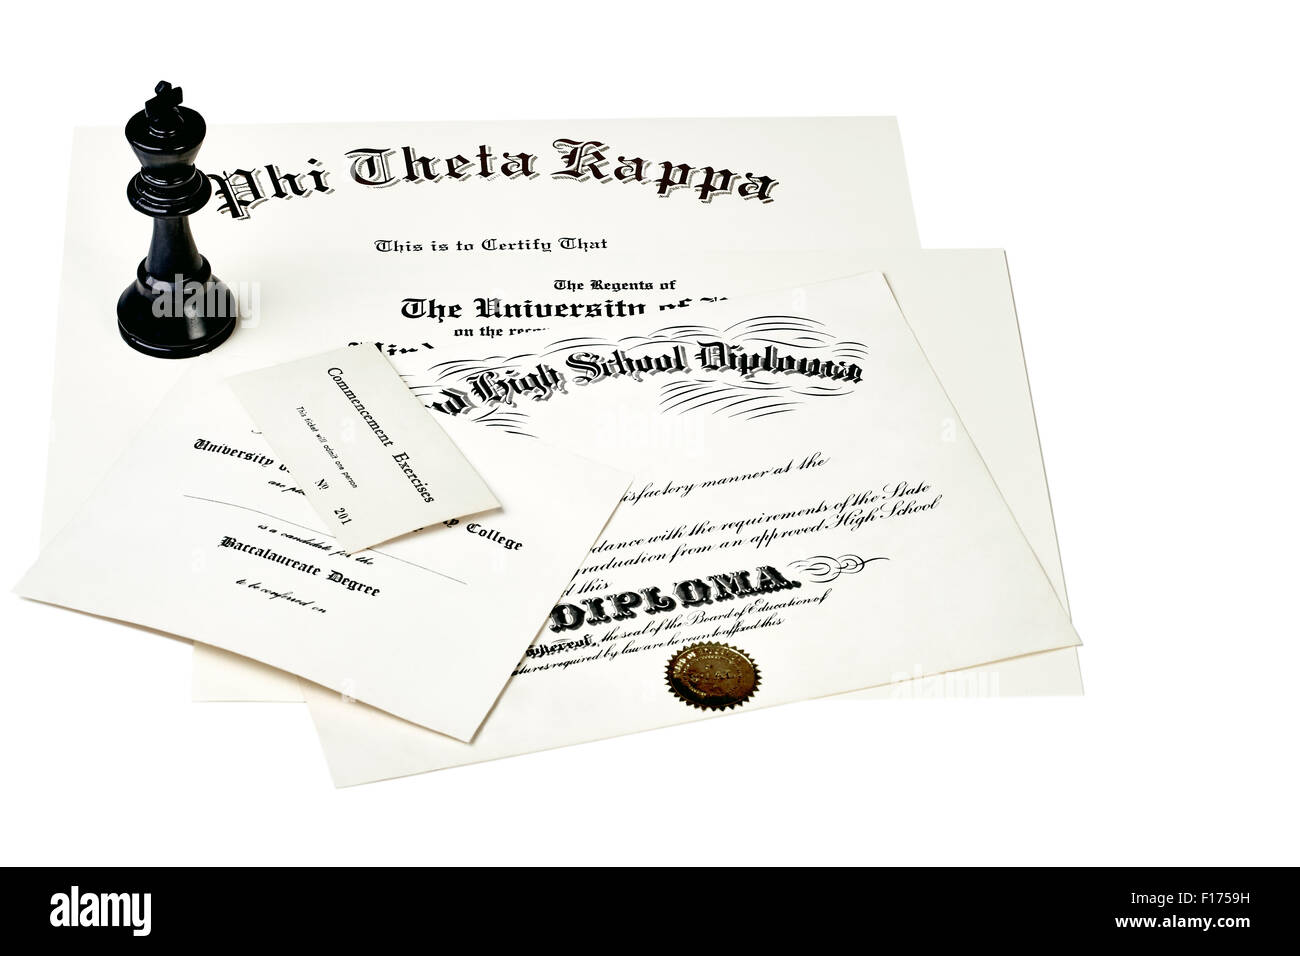 Education certification documents including high school diploma,commencement ticket, fraternity certification and - Stock Image